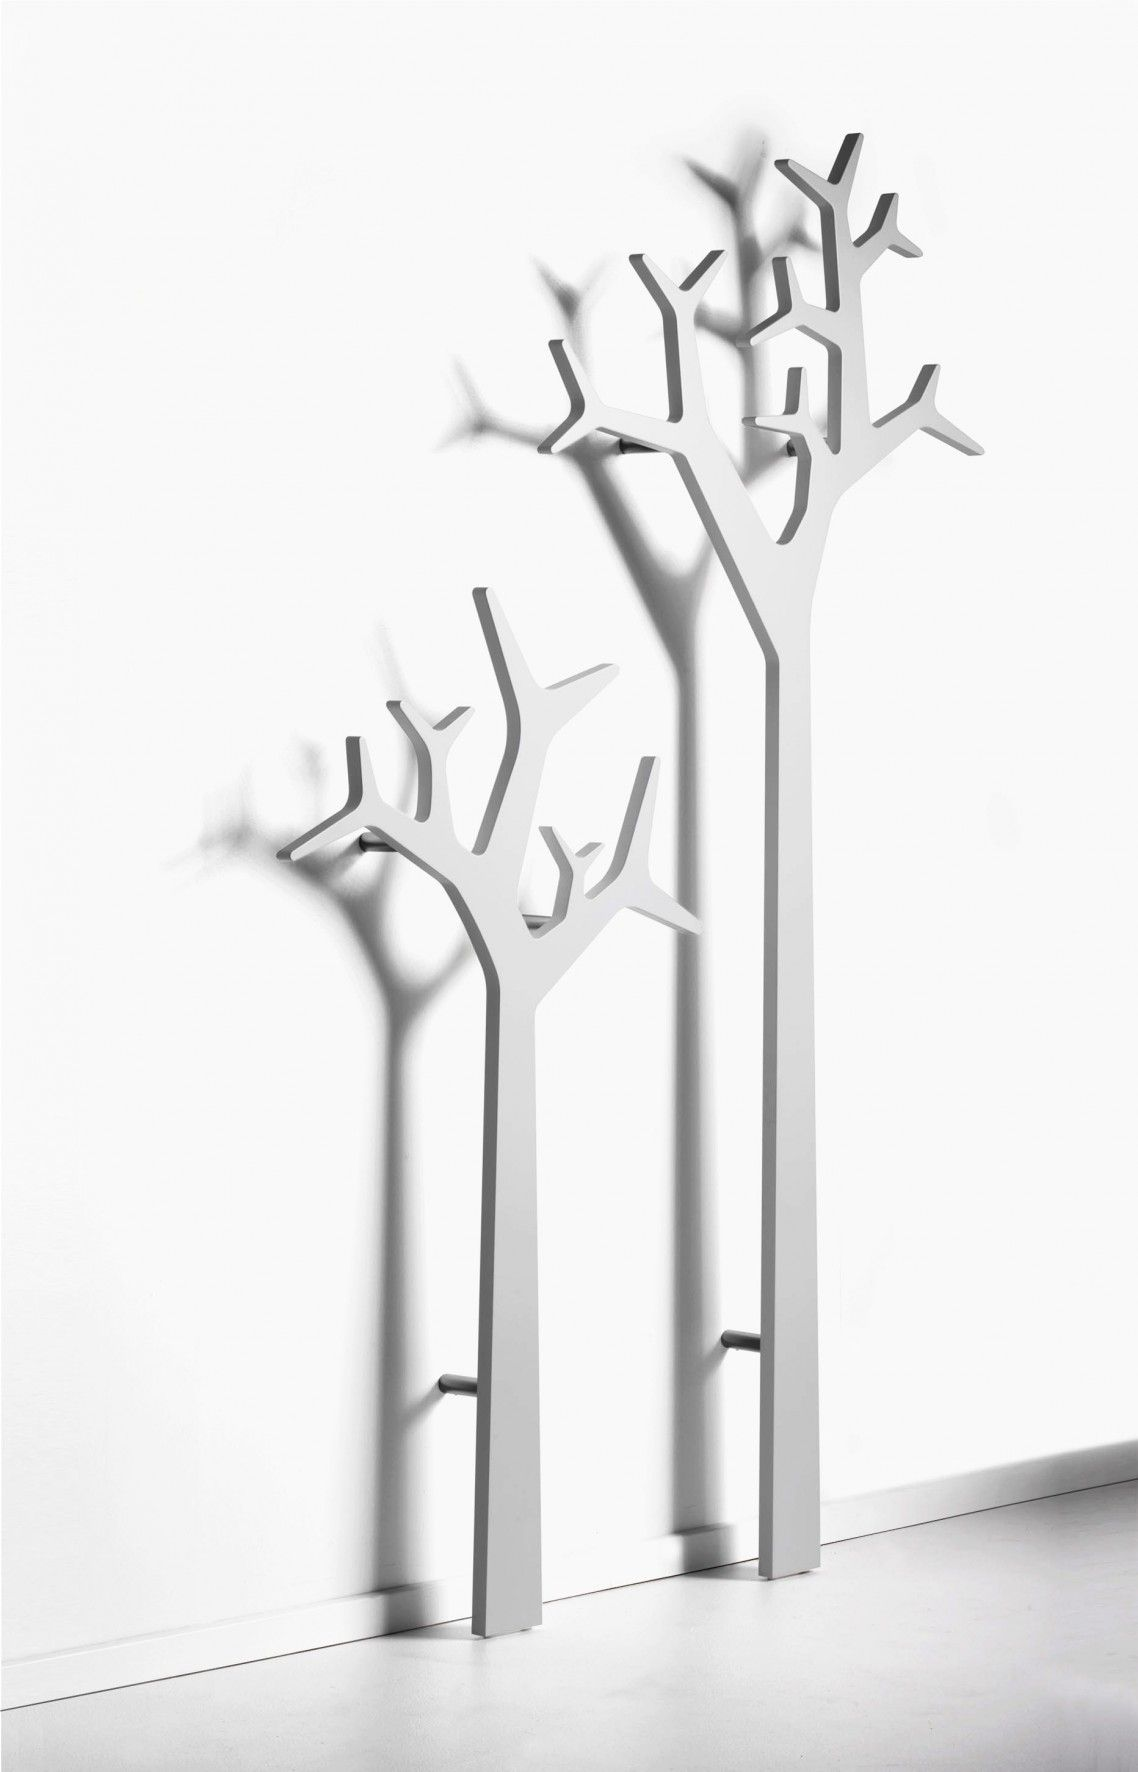 Amazing Double Grey Coat Rack Stand Ikea With Branch Hooks Charming Design Of Racks Contemporary Idea Furniture Liances